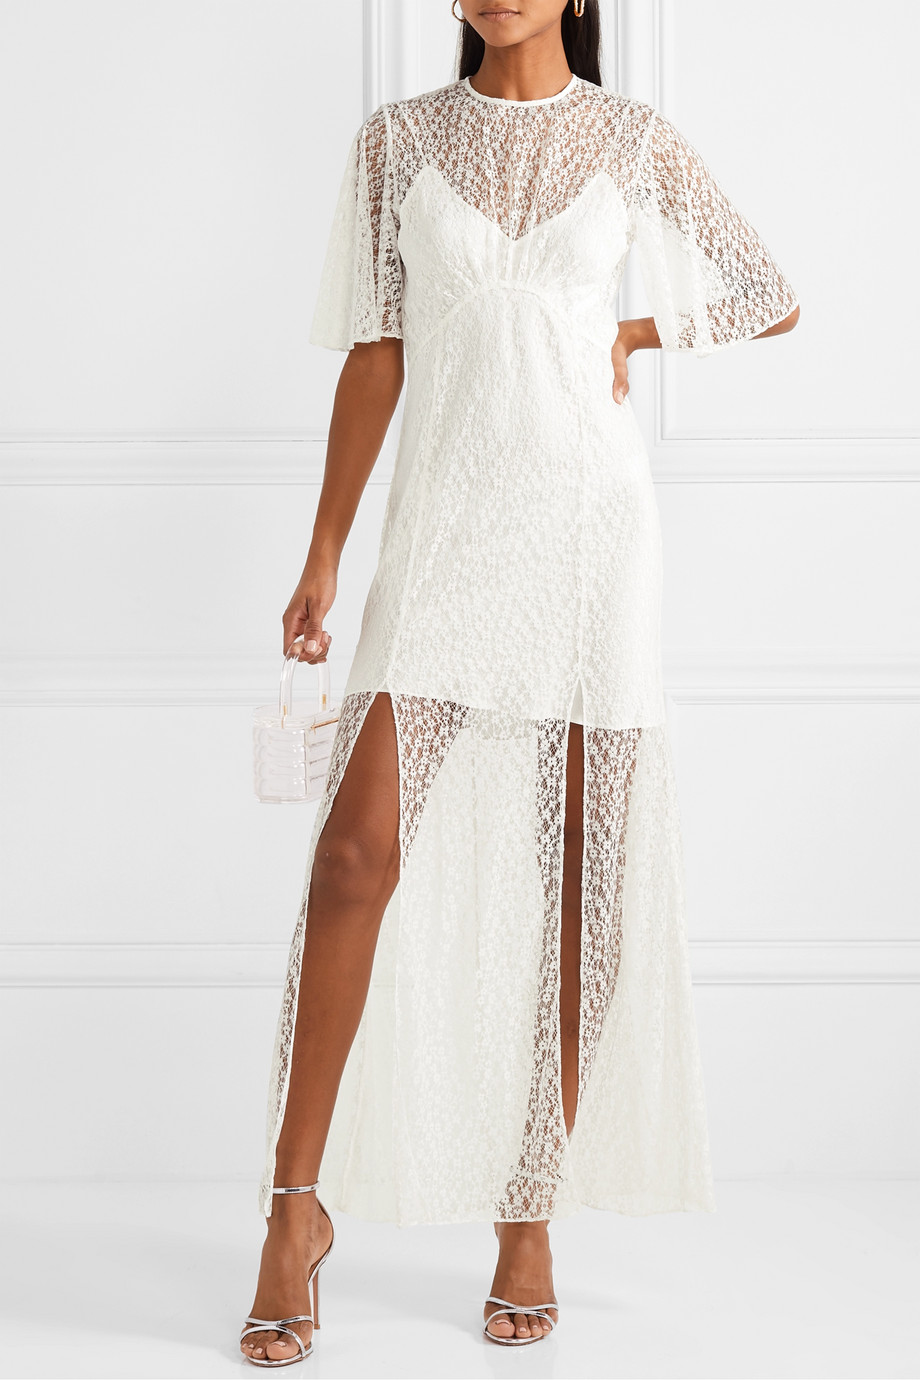 Les Rêveries Lace gown